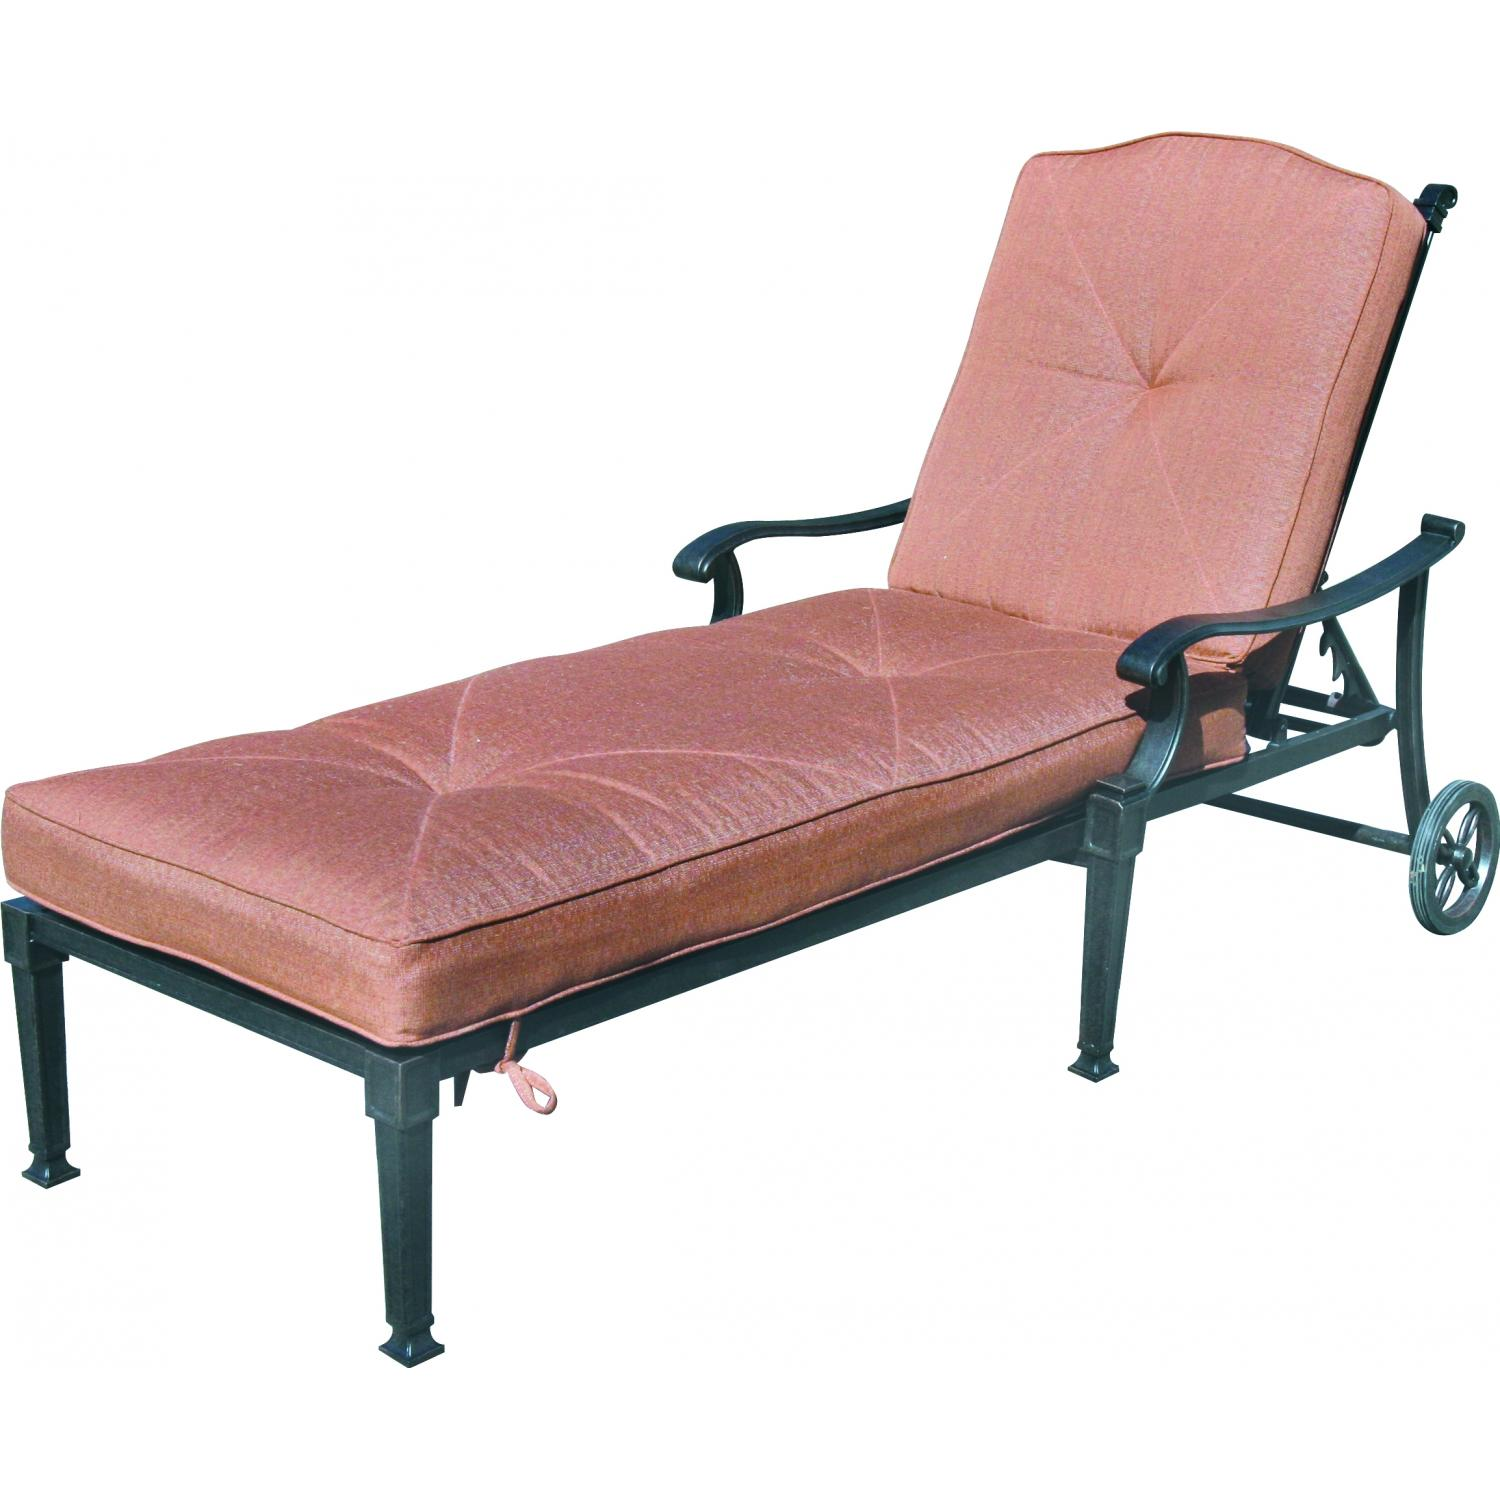 Picture of Darlee Charleston Cast Aluminum Patio Chaise Lounge - Antique Bronze